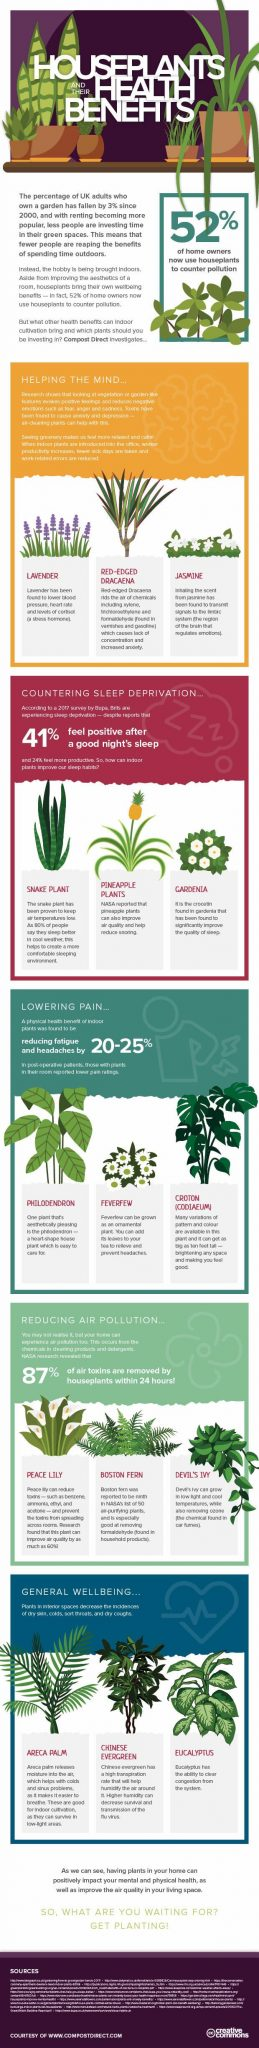 Enhance your home with more house plants and reap the potential health benefits